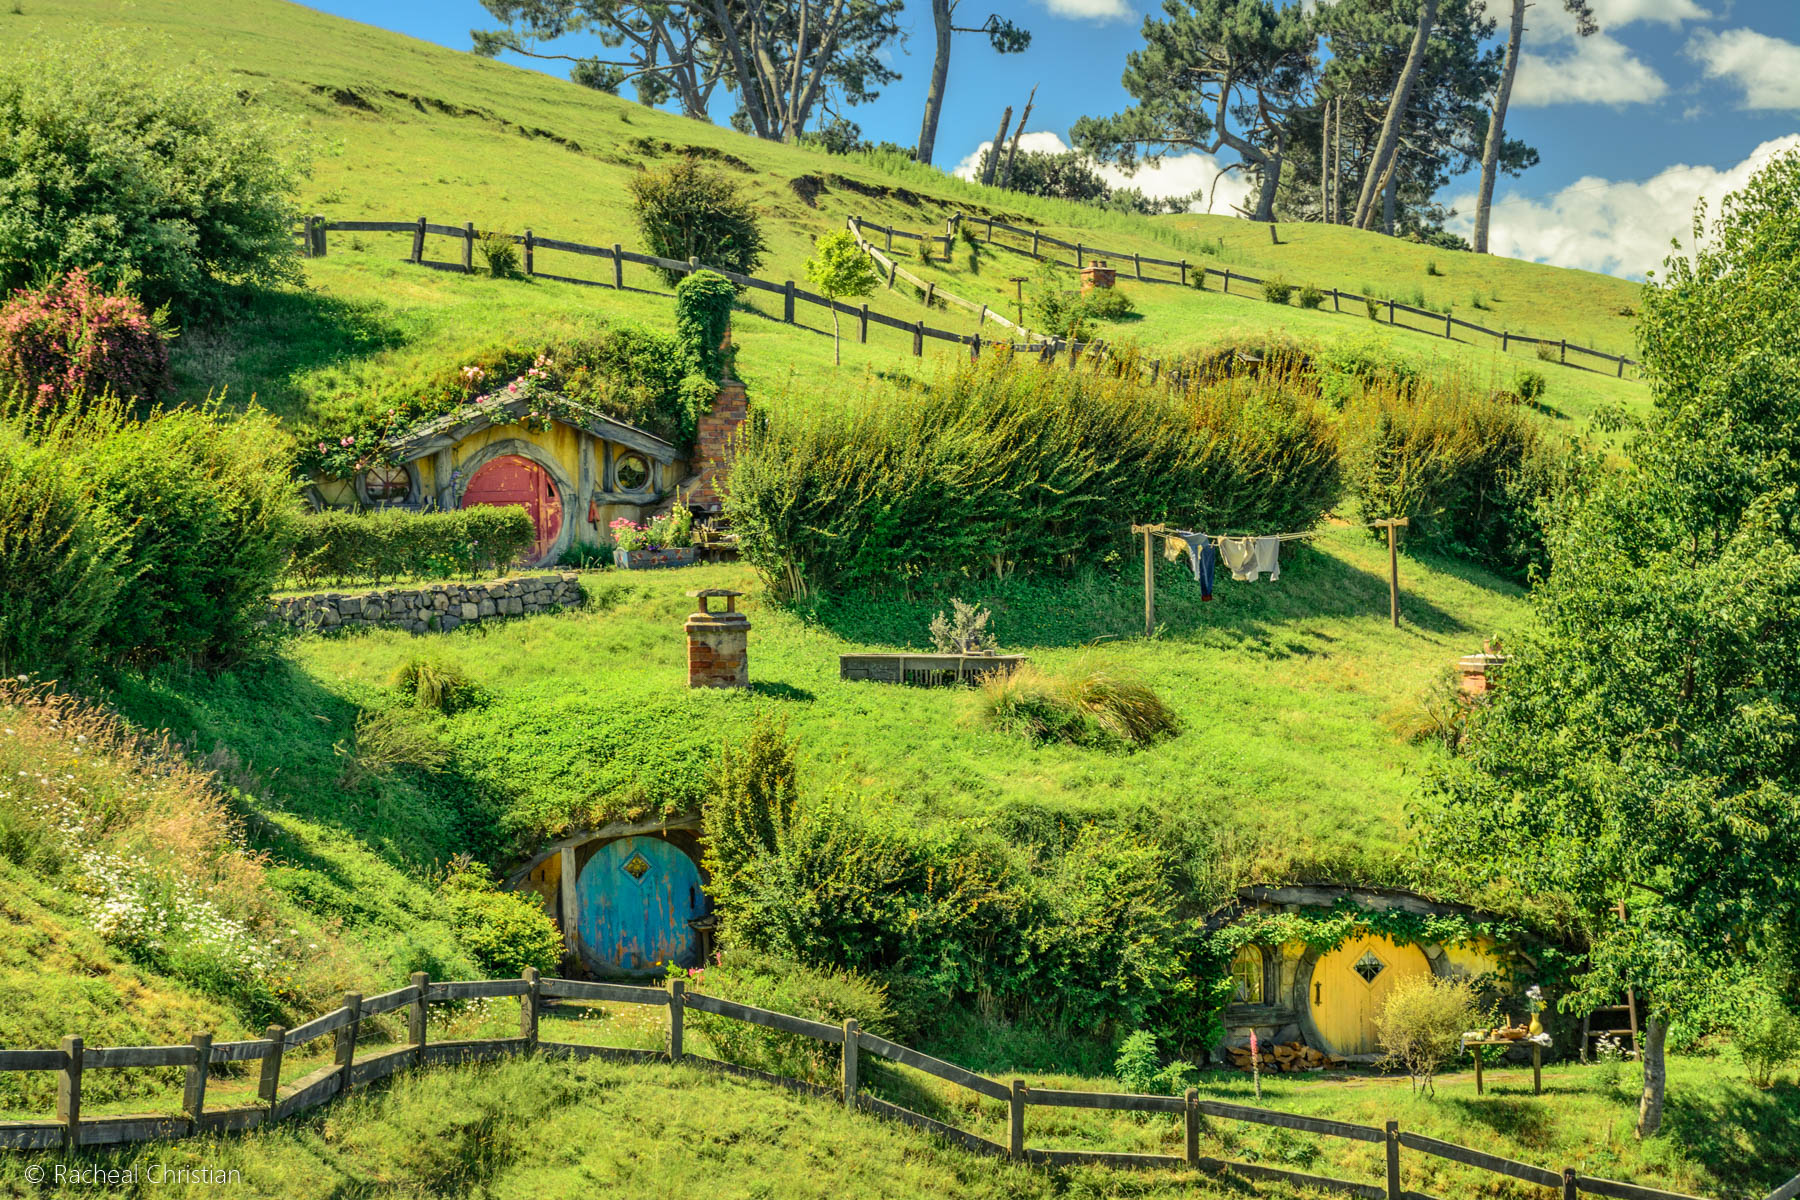 Hobbit holes - Hobbiton by Racheal Christian -